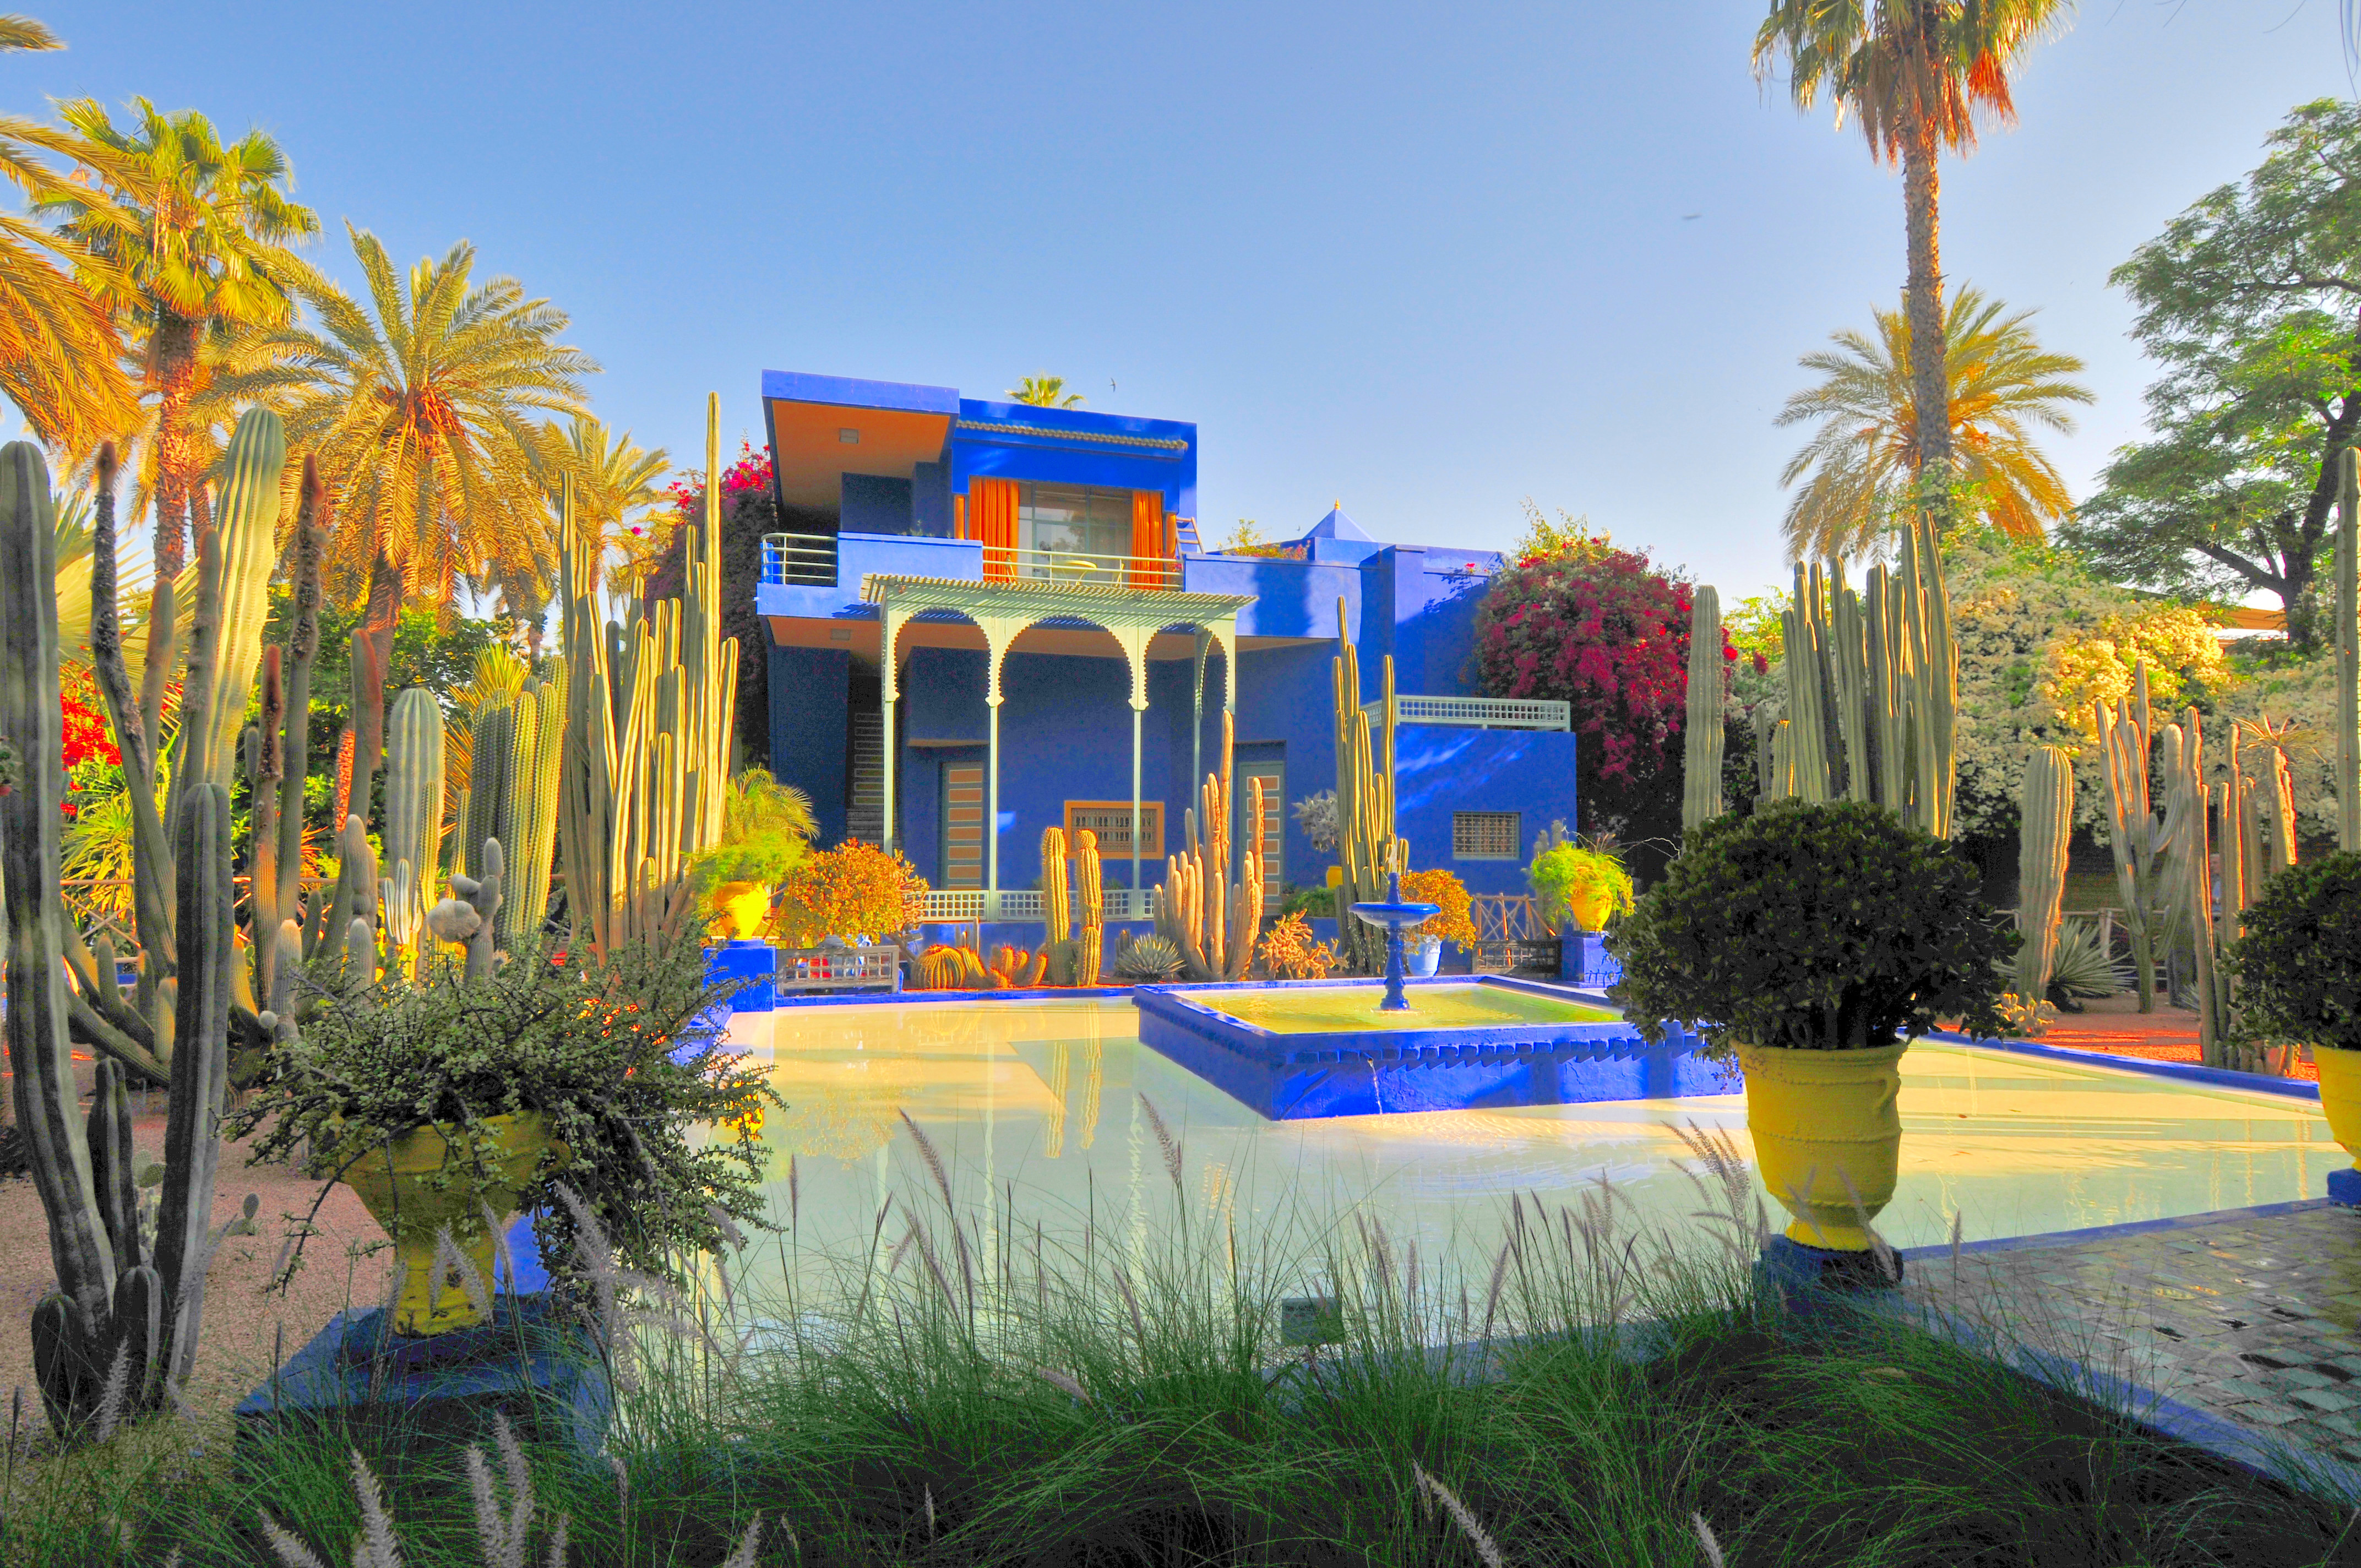 file le jardin des majorelle 21 jpg wikimedia commons. Black Bedroom Furniture Sets. Home Design Ideas